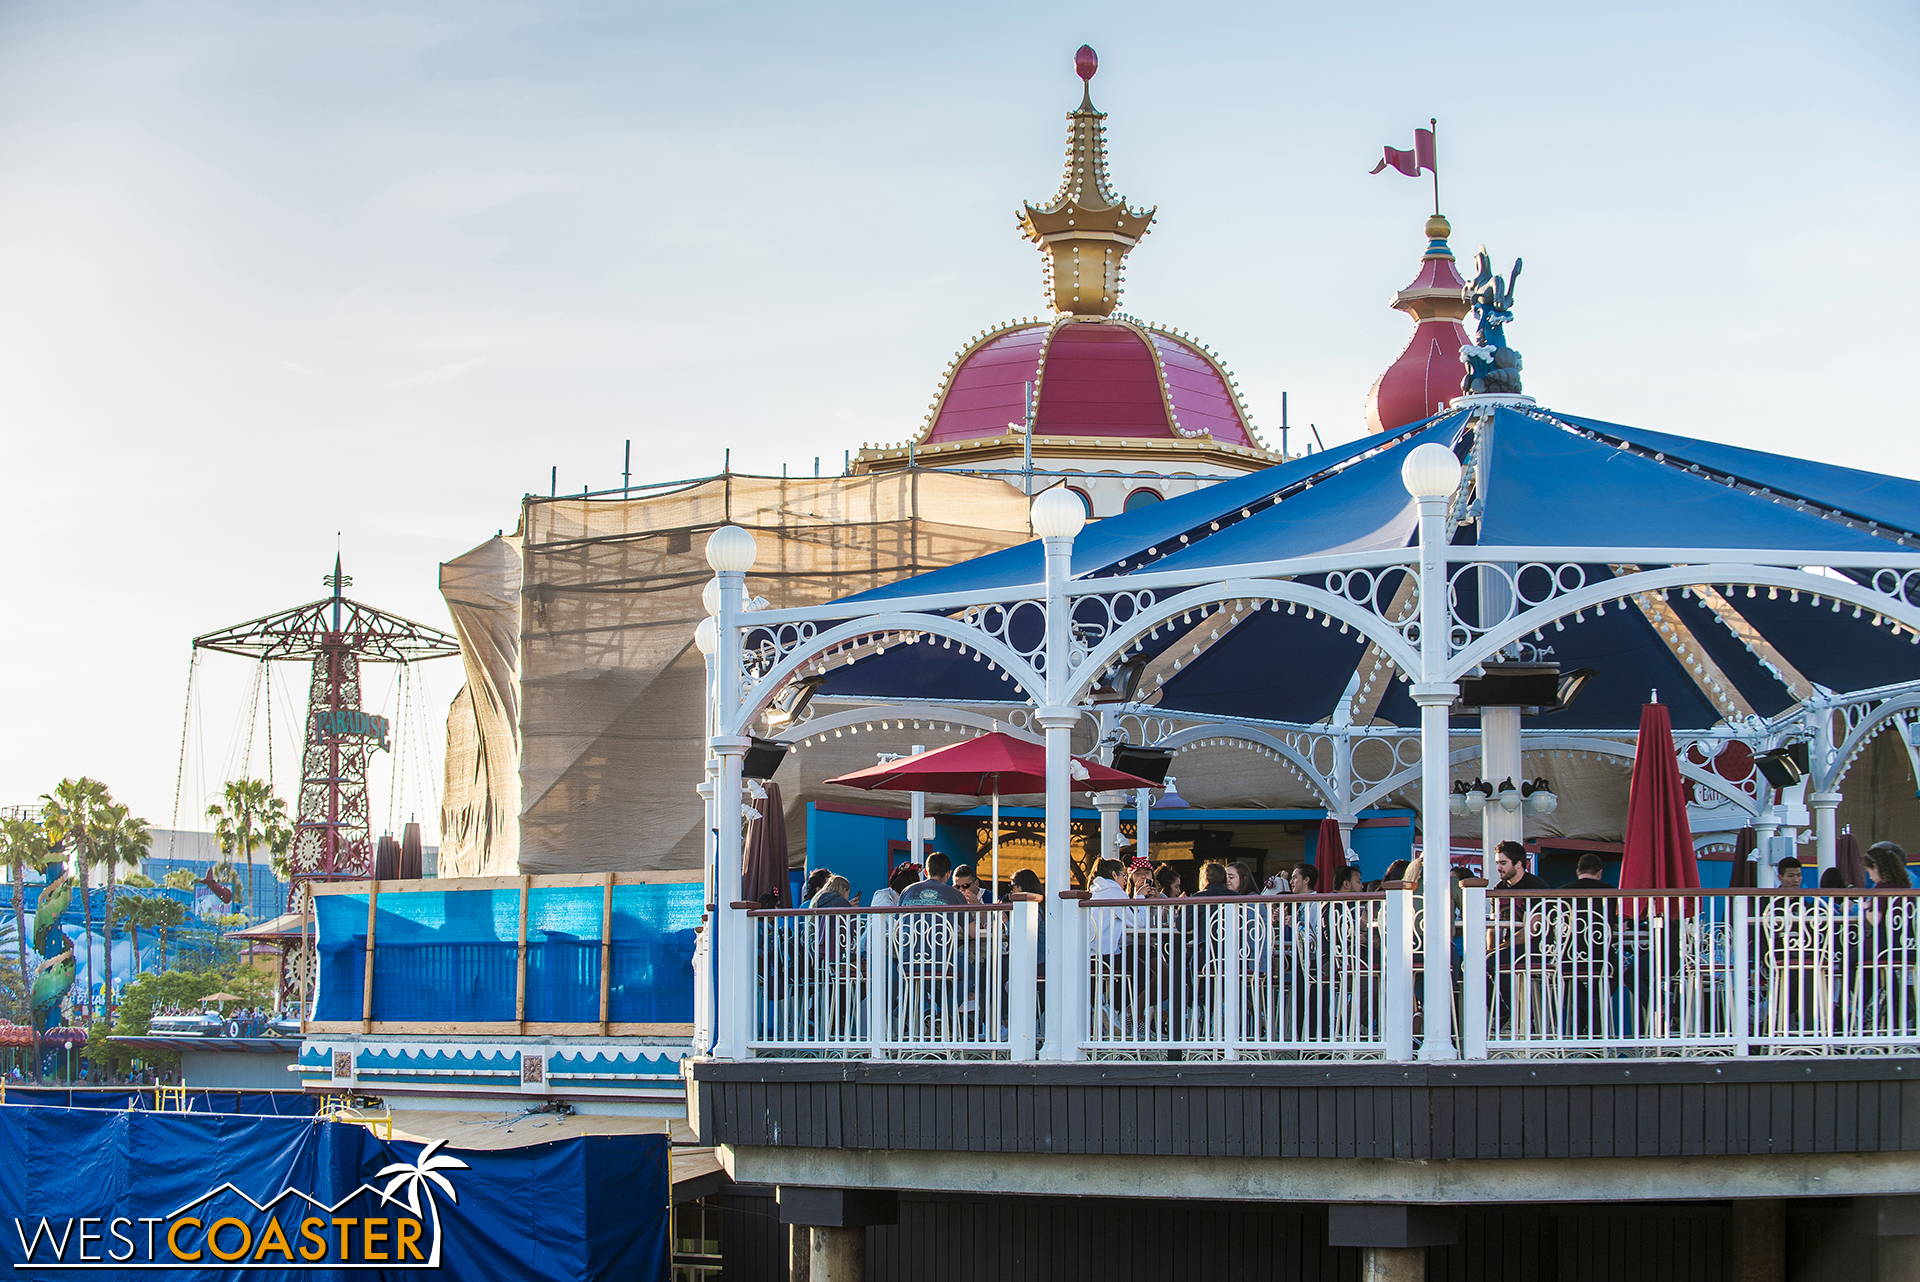 The removal of the high scrim walls along the turn over the Incredicoaster launch has provided new angles to photograph.